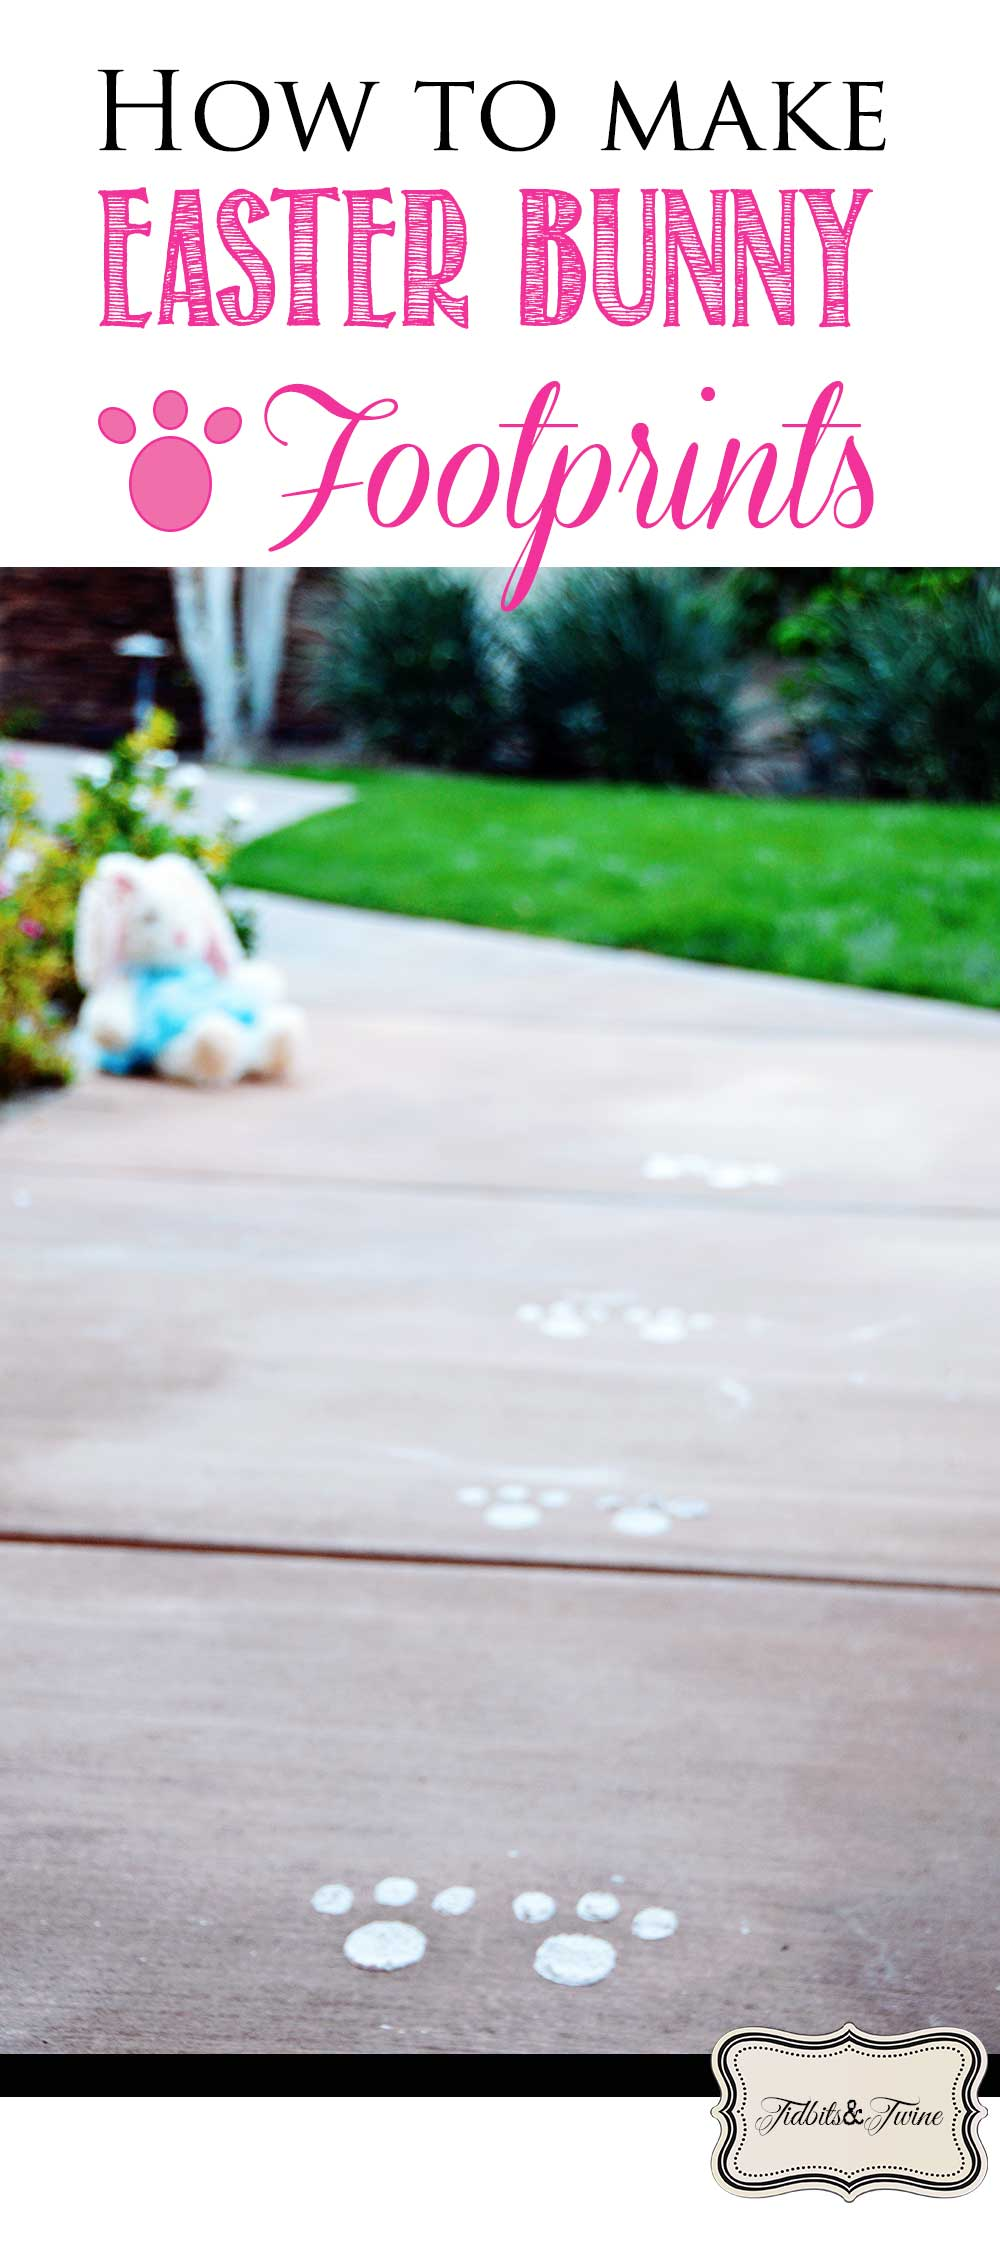 Outdoor image showing magcial easter bunny fooprints on the patio